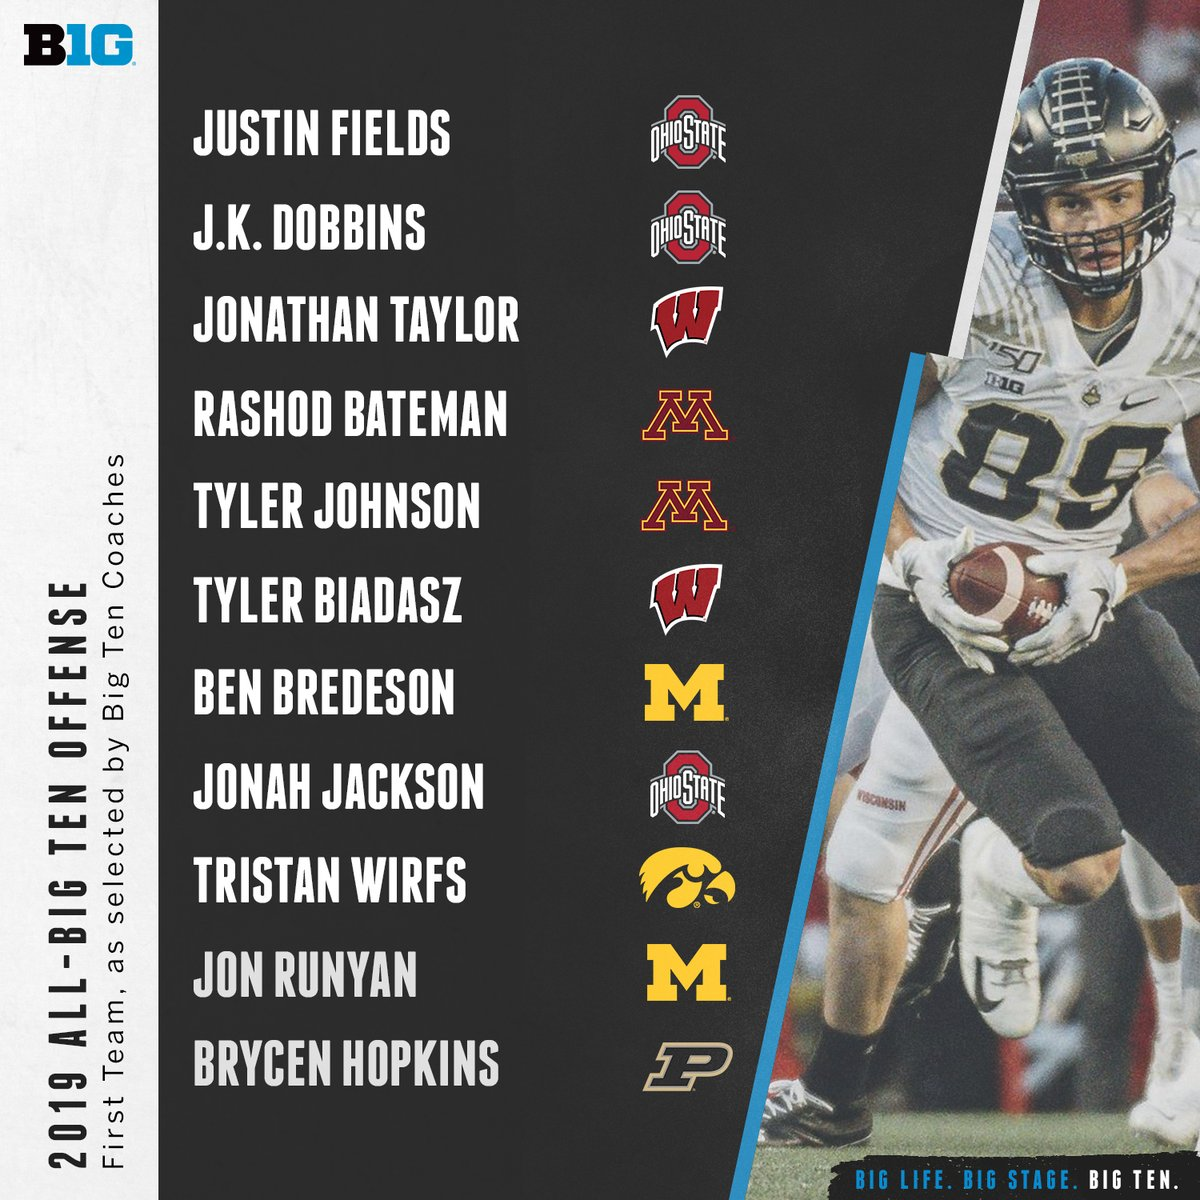 The 2019 All-Big Ten Offense First Teams as selected by #B1GFootball coaches and media.